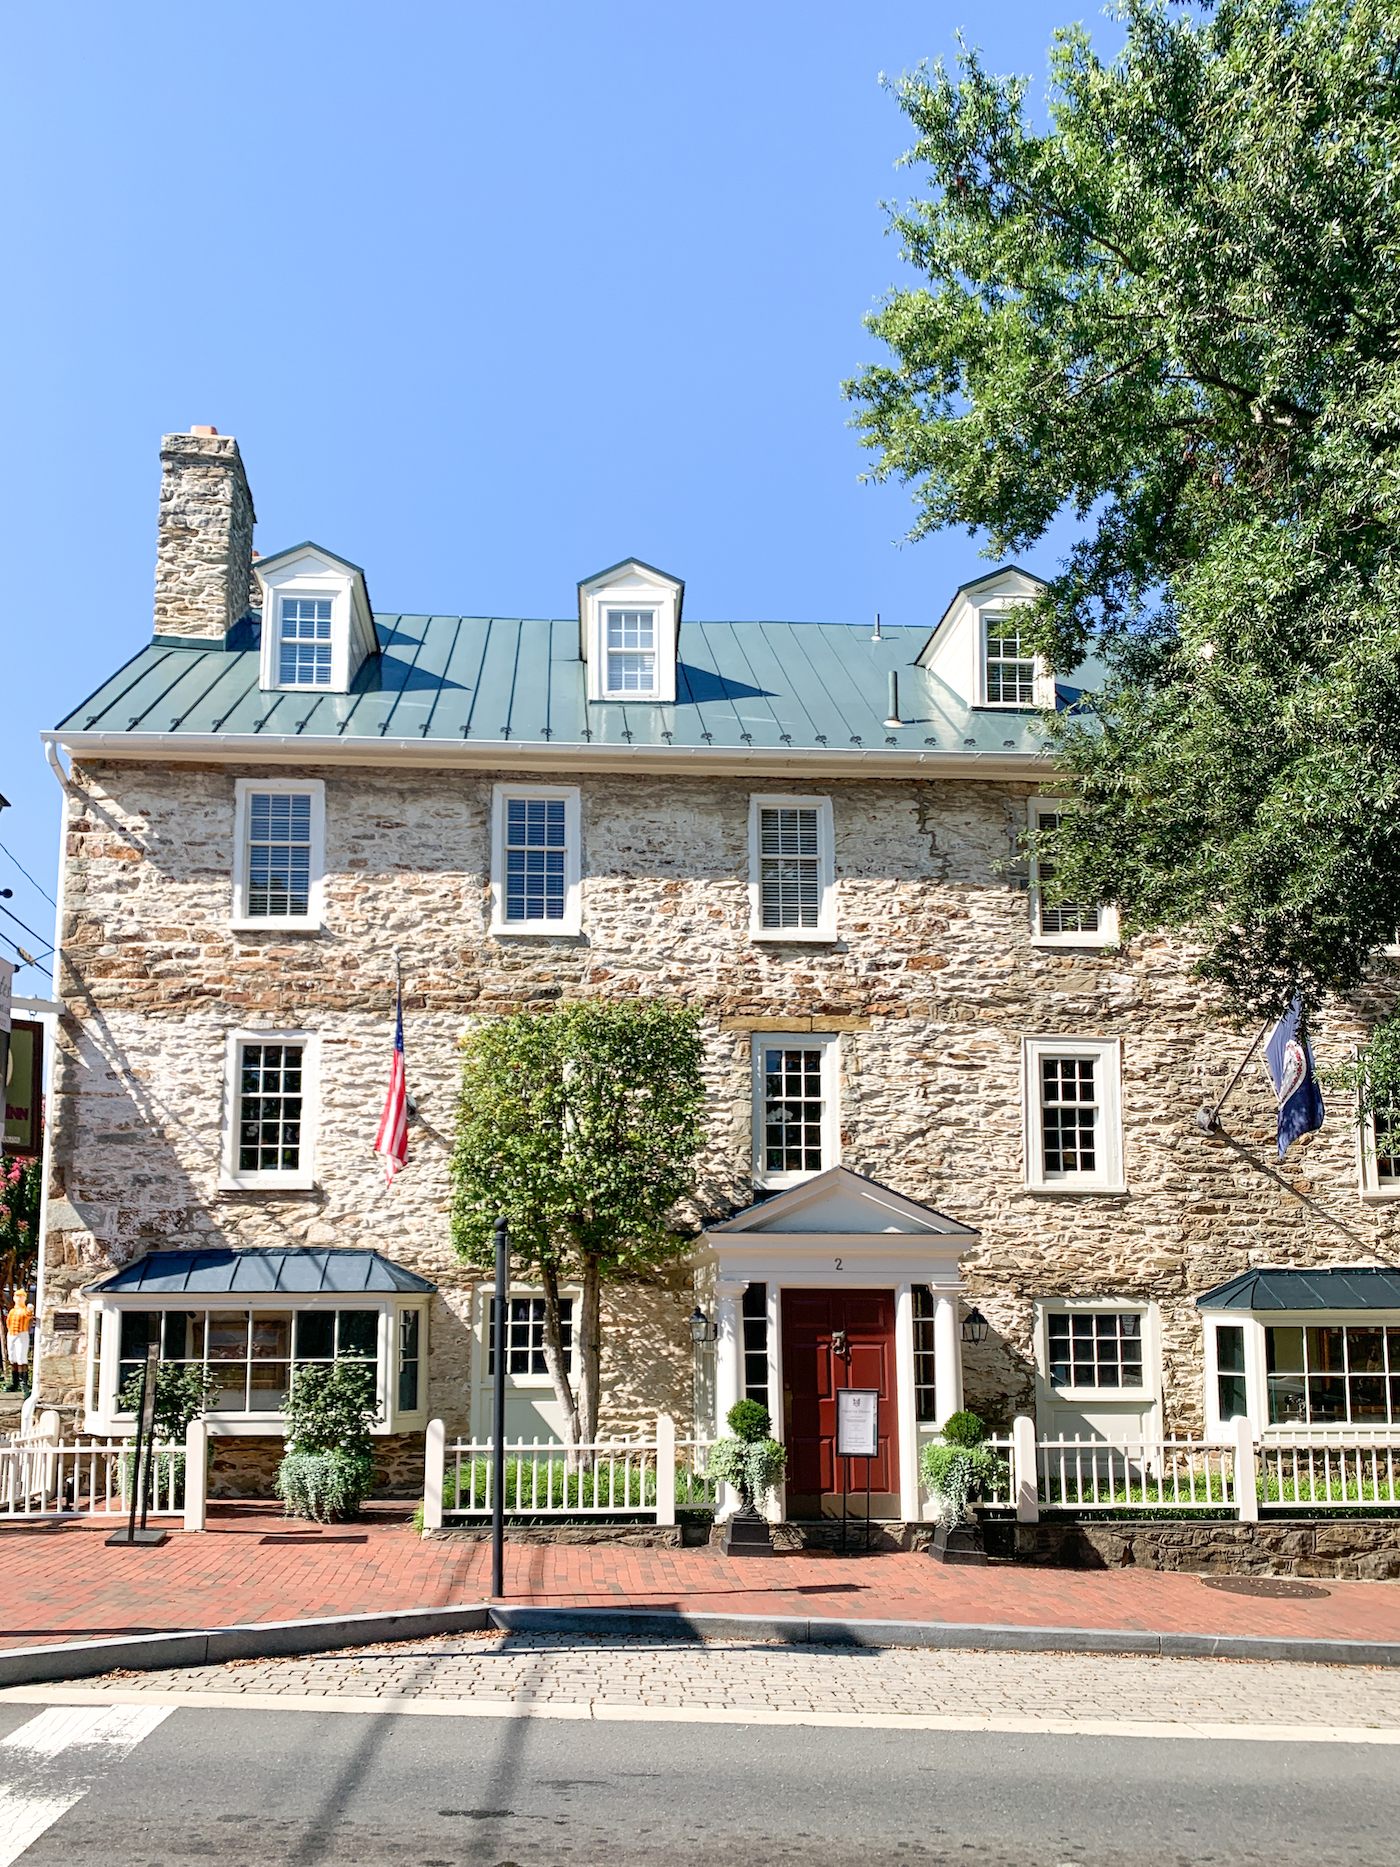 middleburg virginia day trip guide